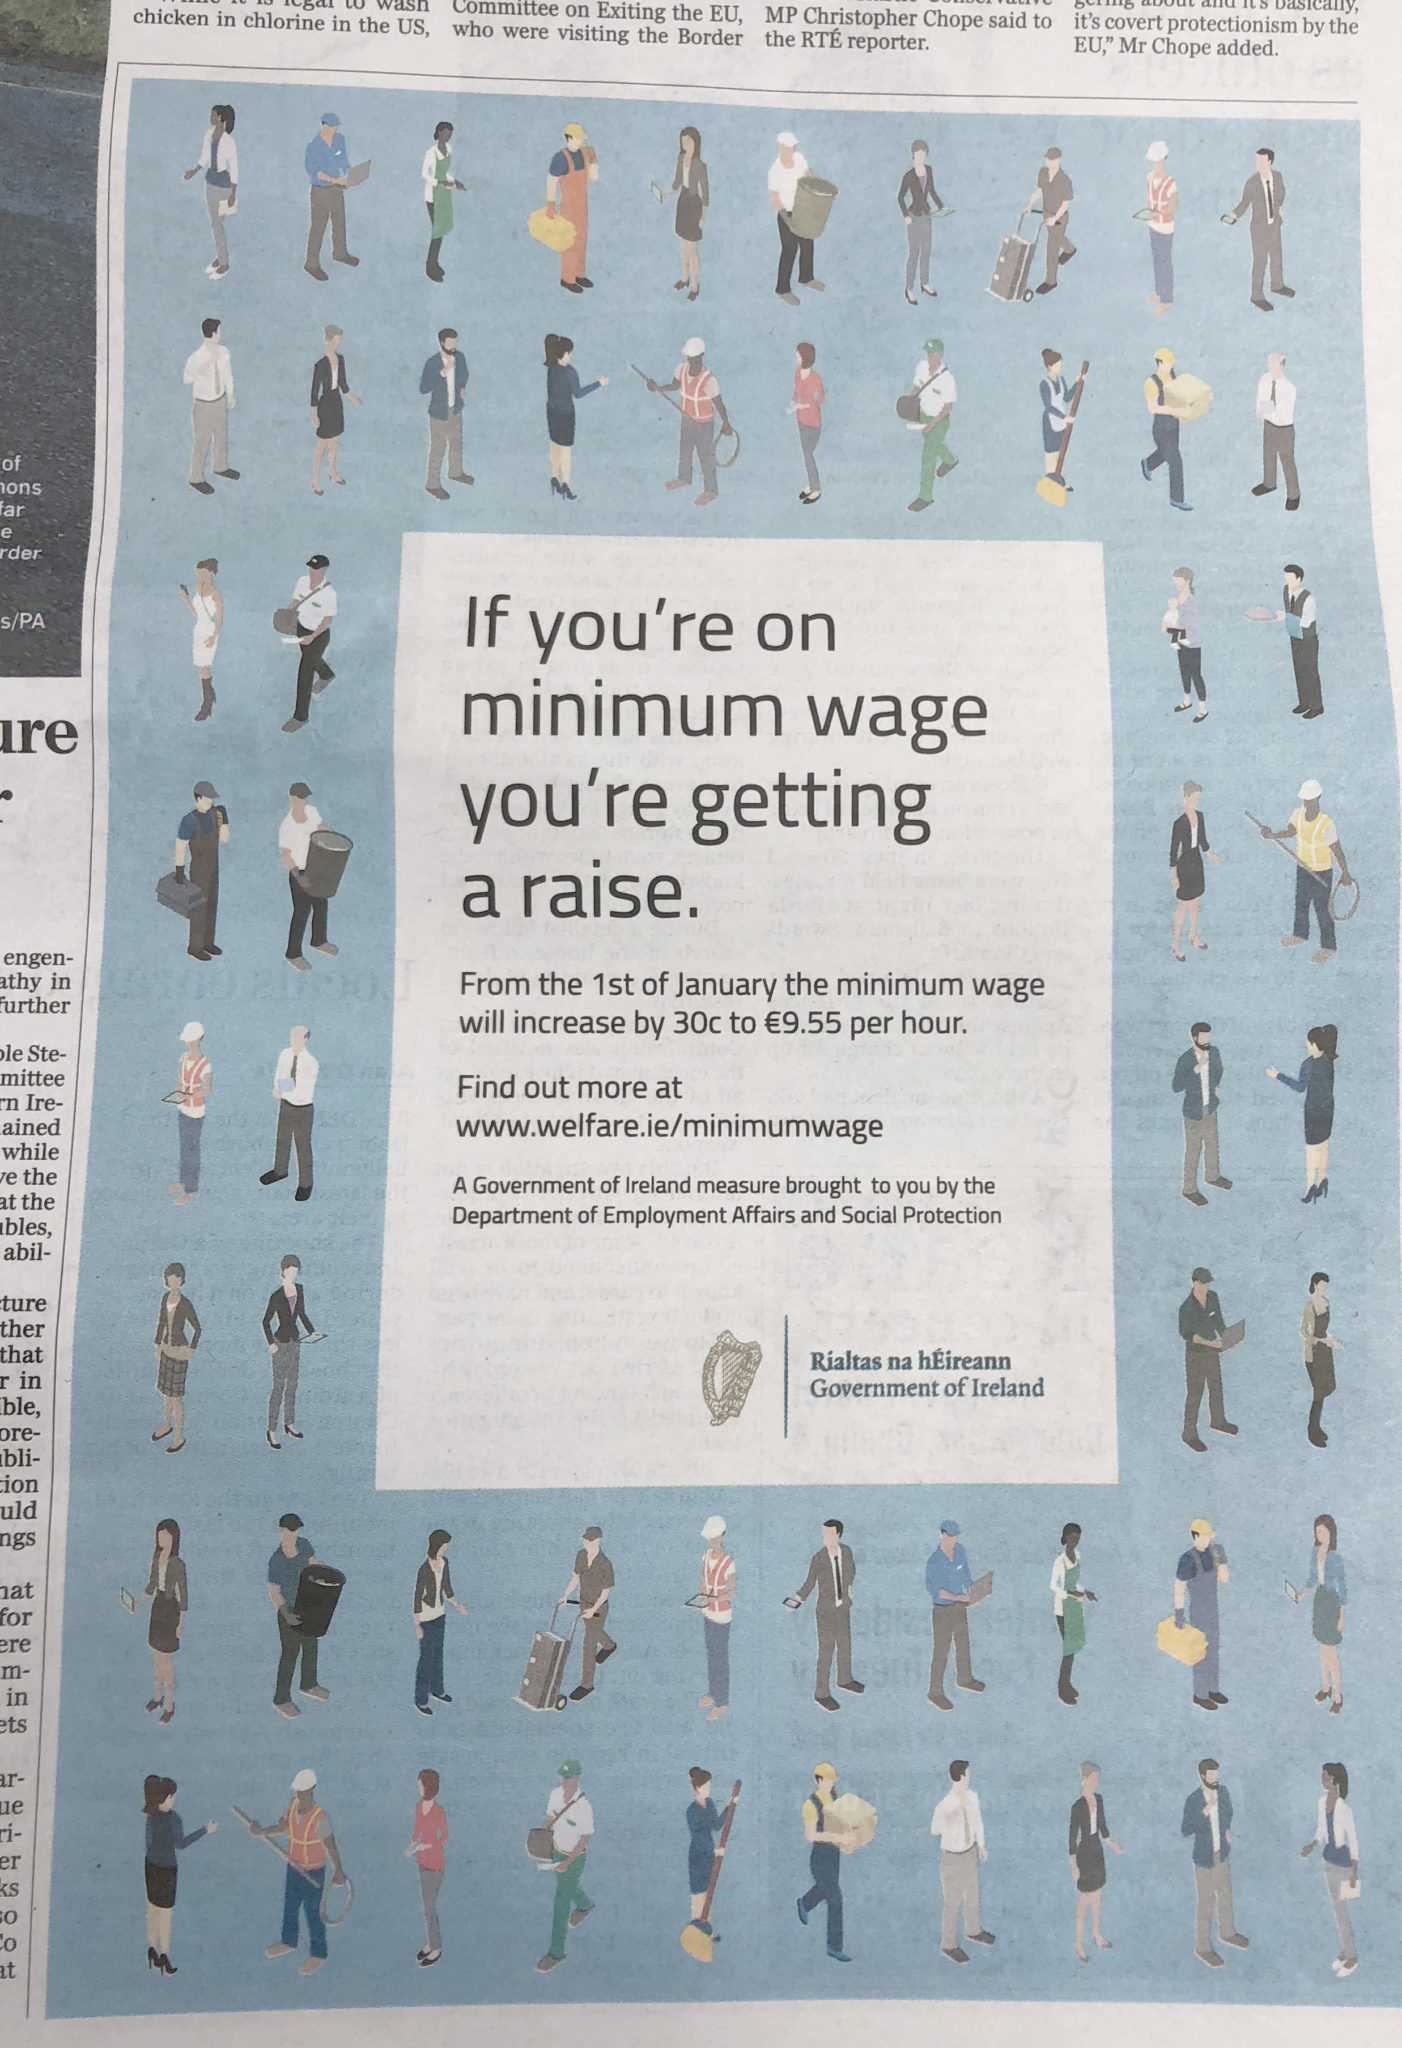 Government of Ireland – Department of Employment Affairs and Social Protection – If you're on minimum wage you're getting a raise.